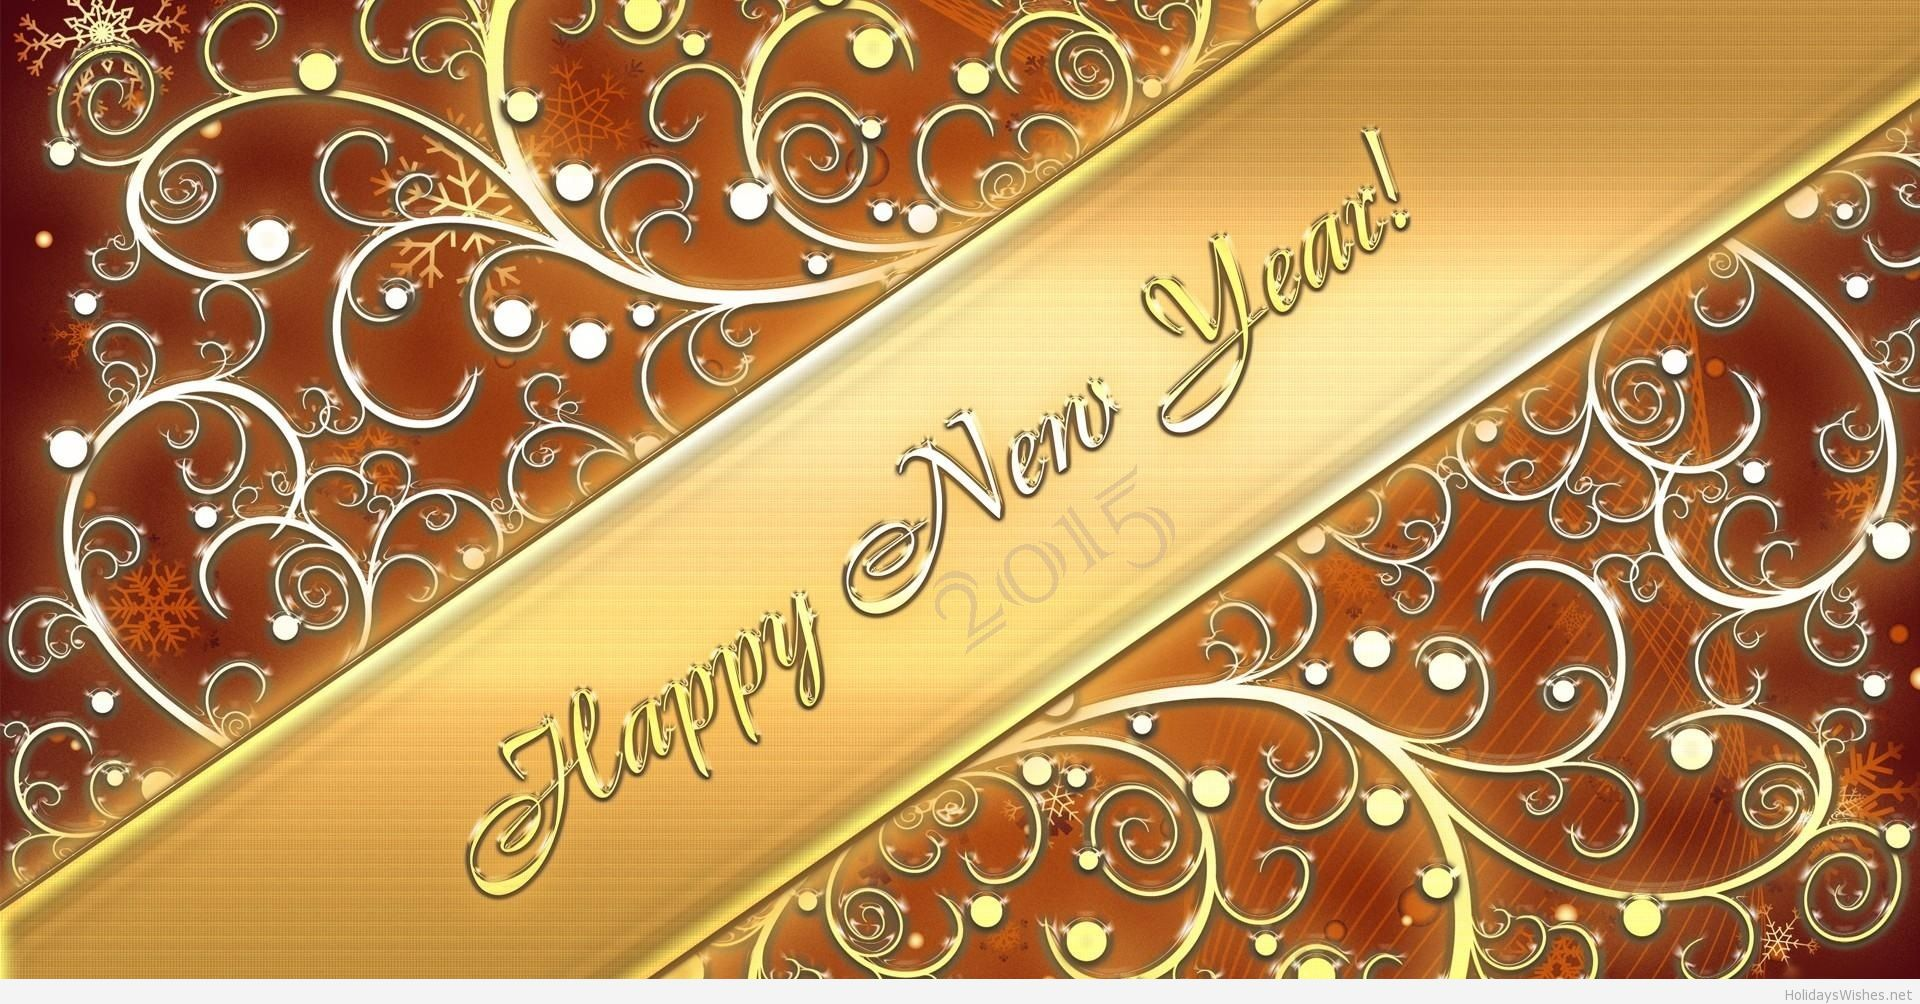 20 Best Colorful Happy New Year Wallpapers 2015 Smash Blog Trends 1920x1004